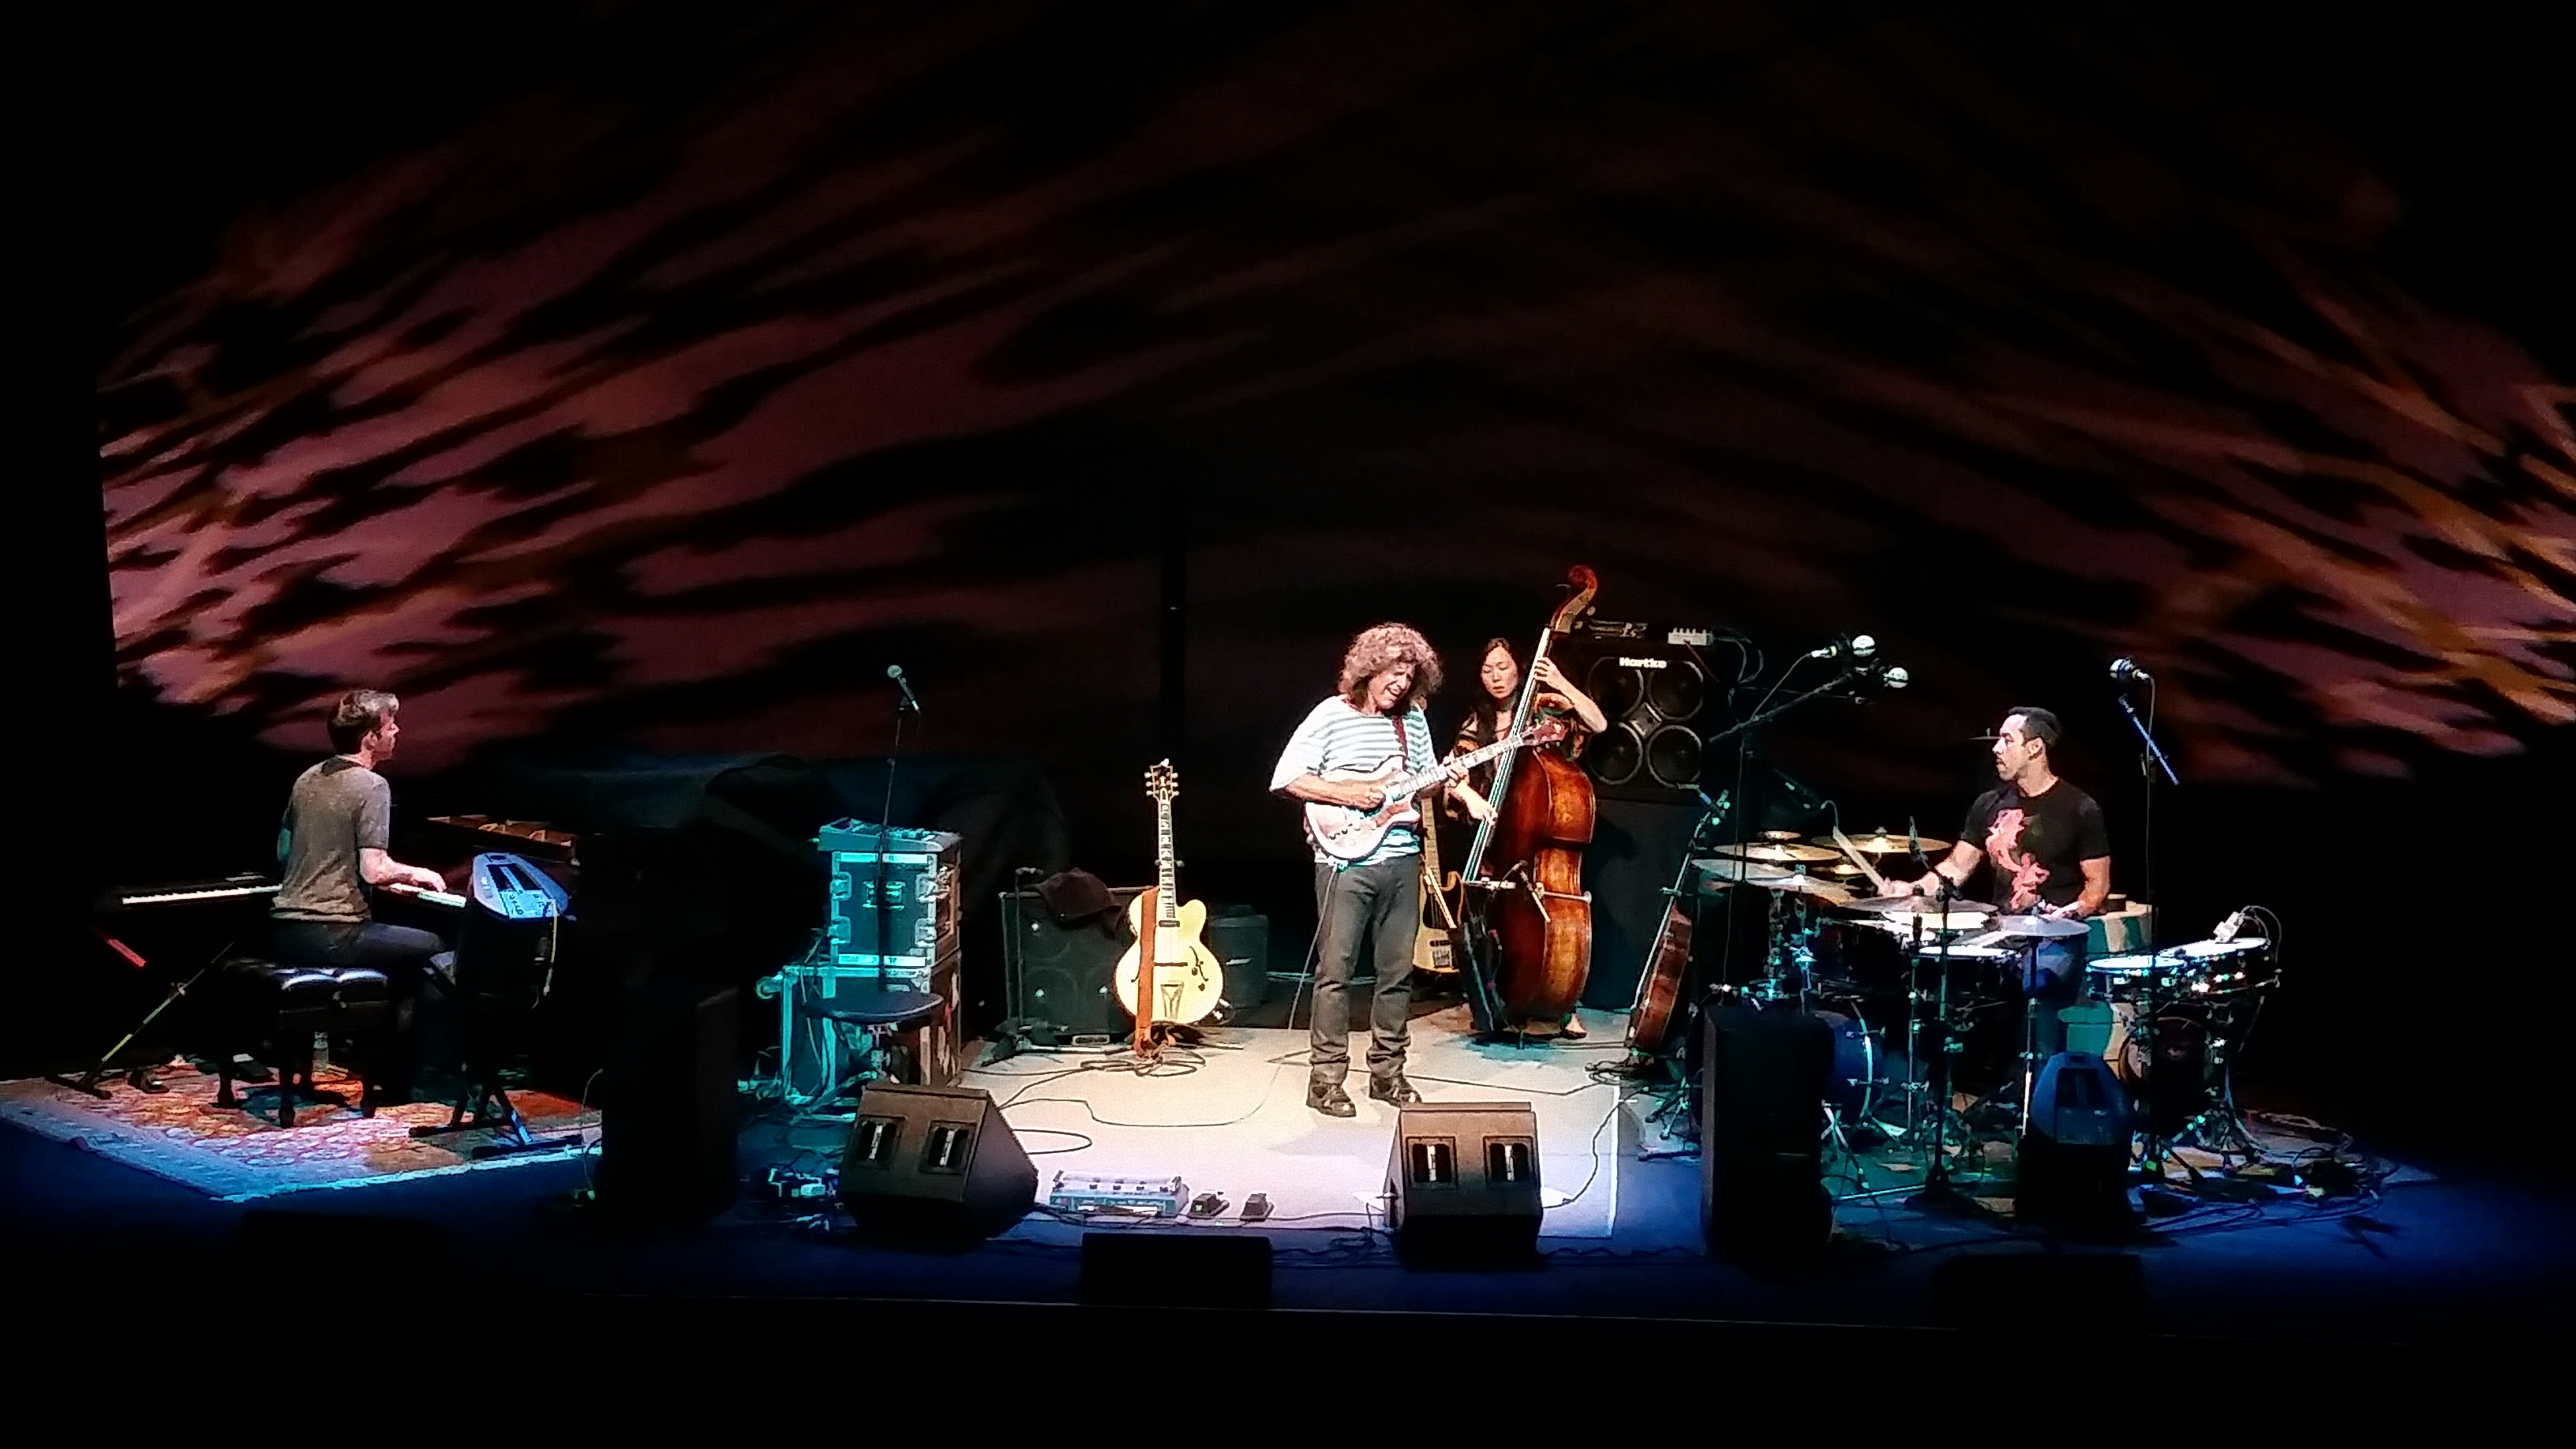 PatMetheny2016-09-16VirginiaPiperTheaterScottsdaleAZ (18).jpg